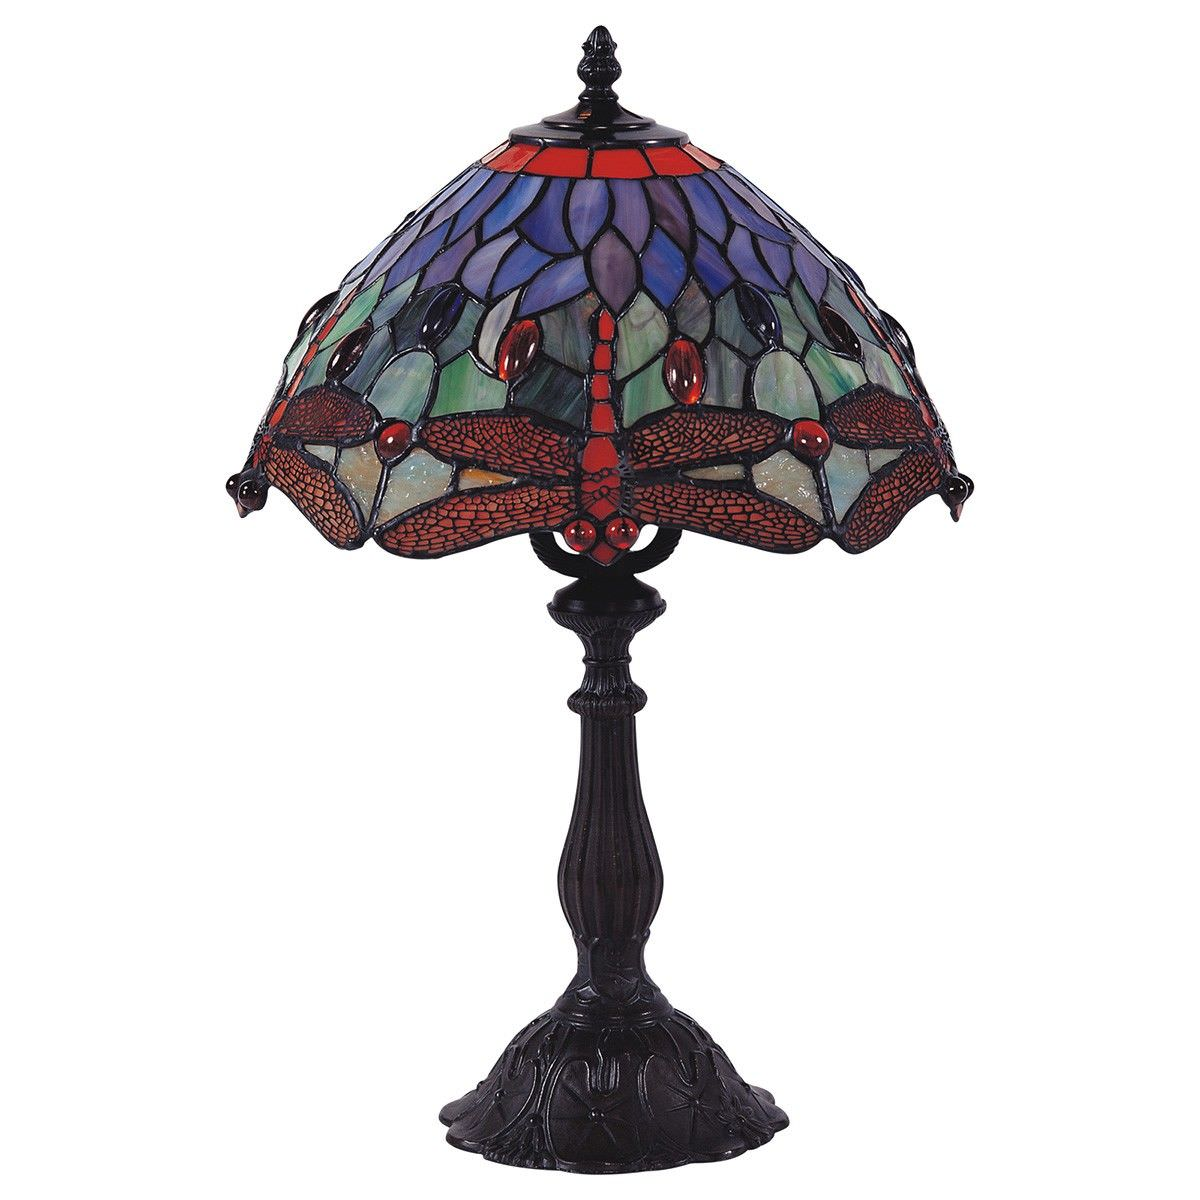 Fantasy Dragonfly Tiffany Style Stained Glass Table Lamp, Medium, Red / Blue